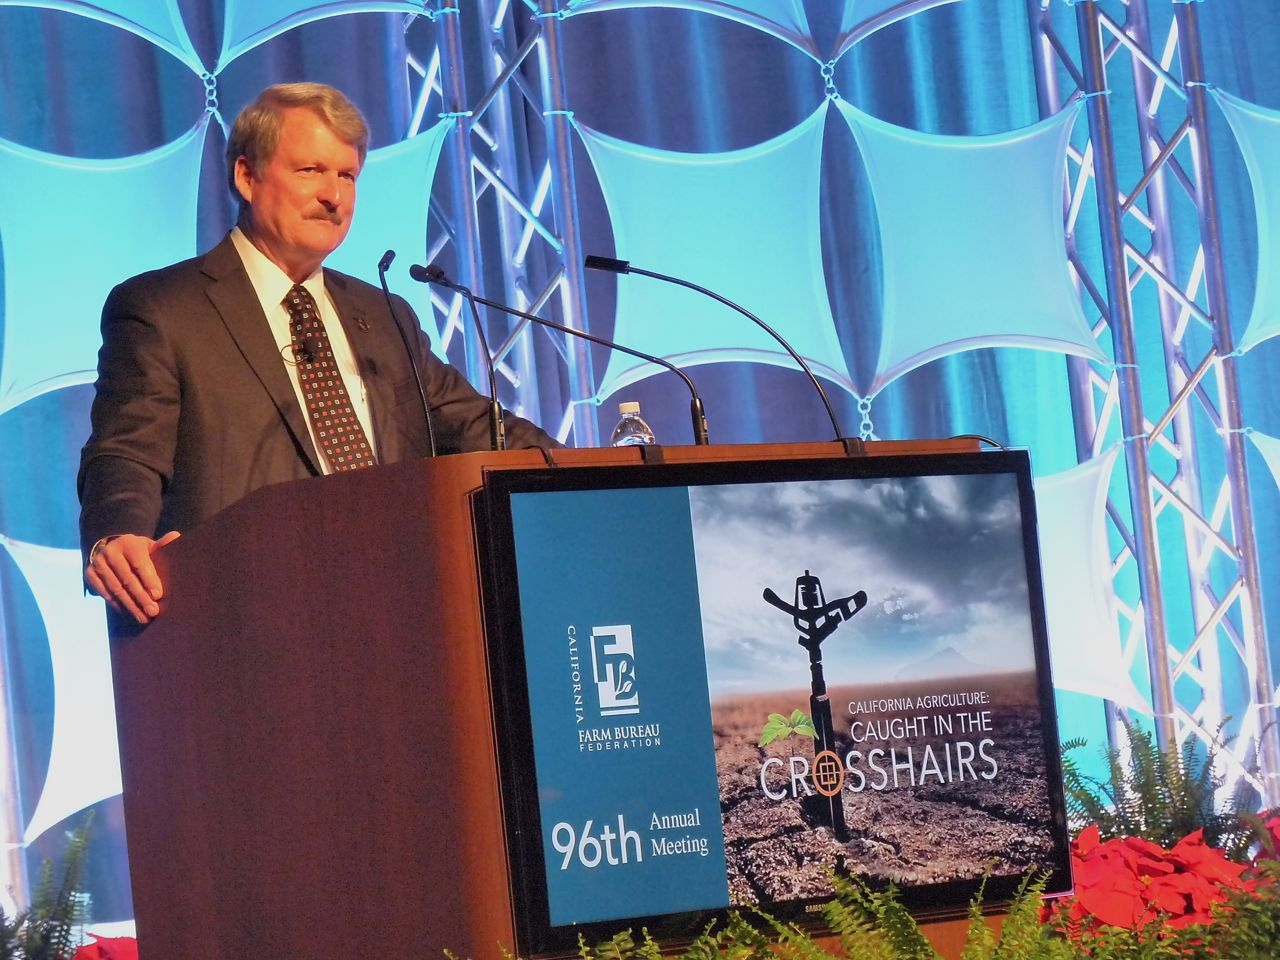 California Farm Bureau's Paul Wenger Addresses 96th Annual Meeting